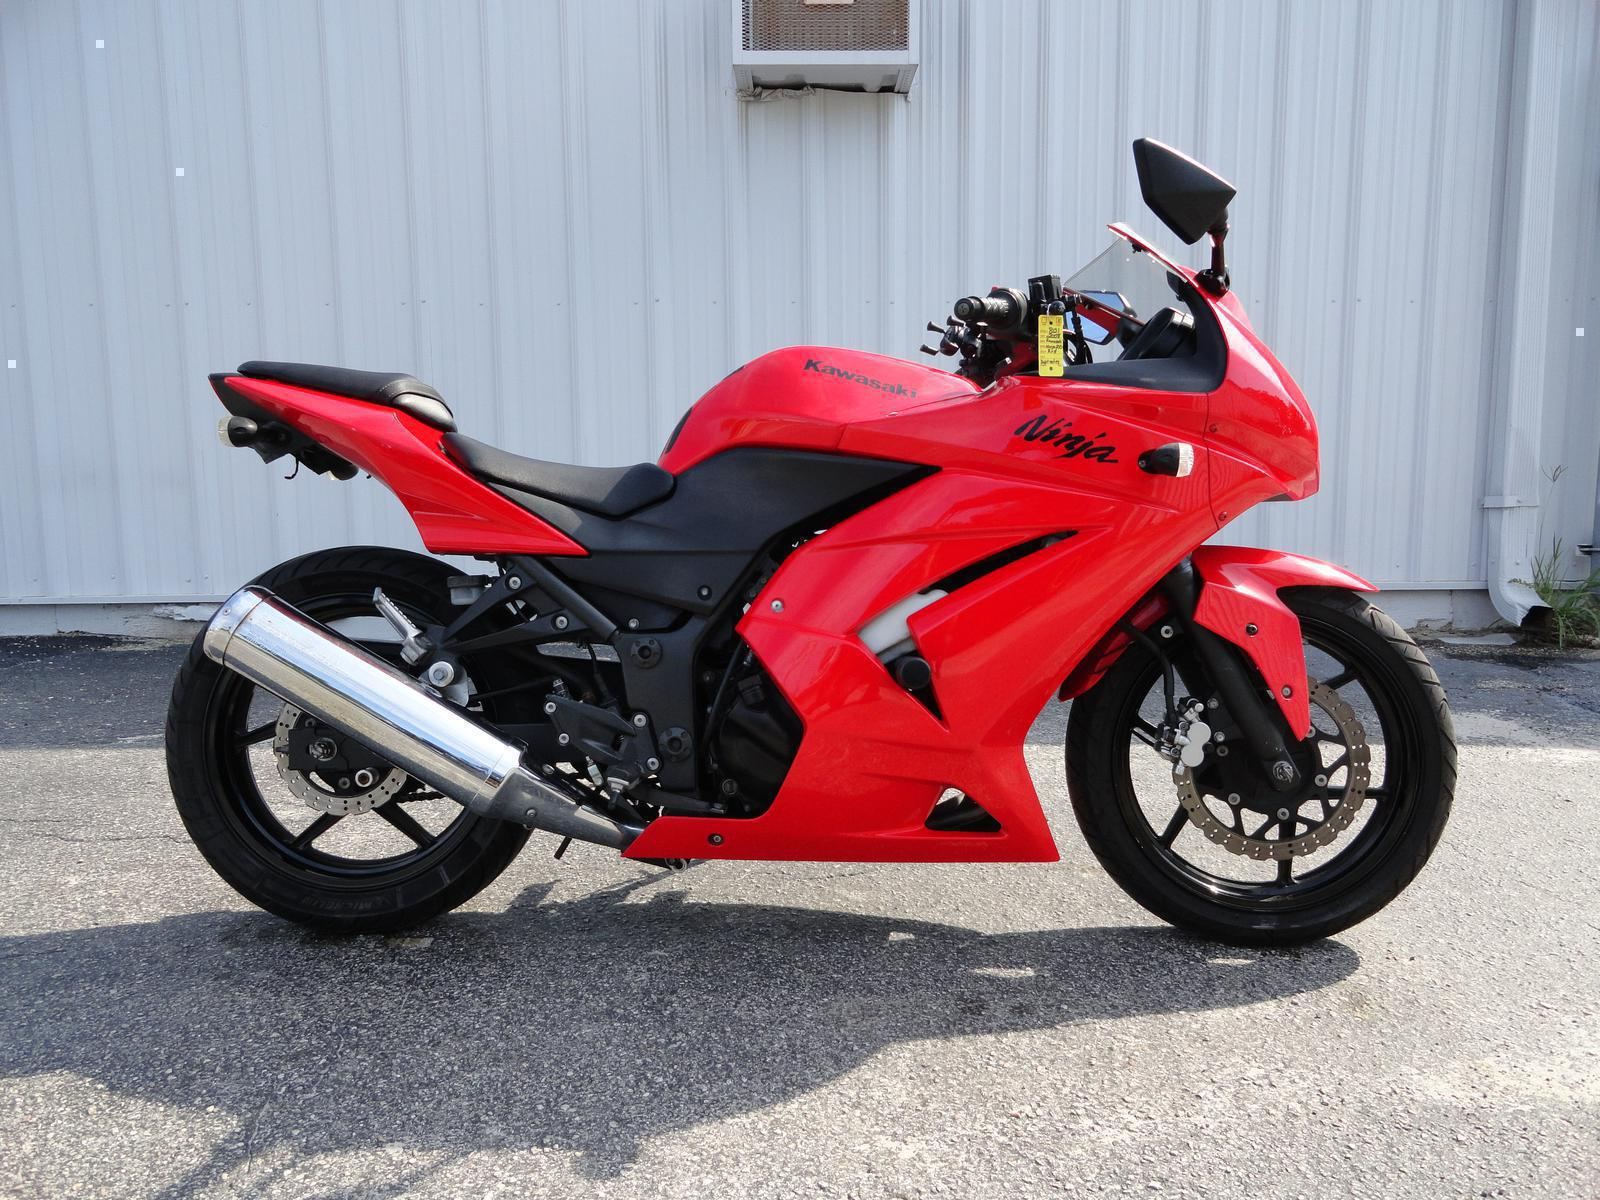 2008 Kawasaki Ninja 250 for sale in Longwood, FL | Prime Motorcycles ...